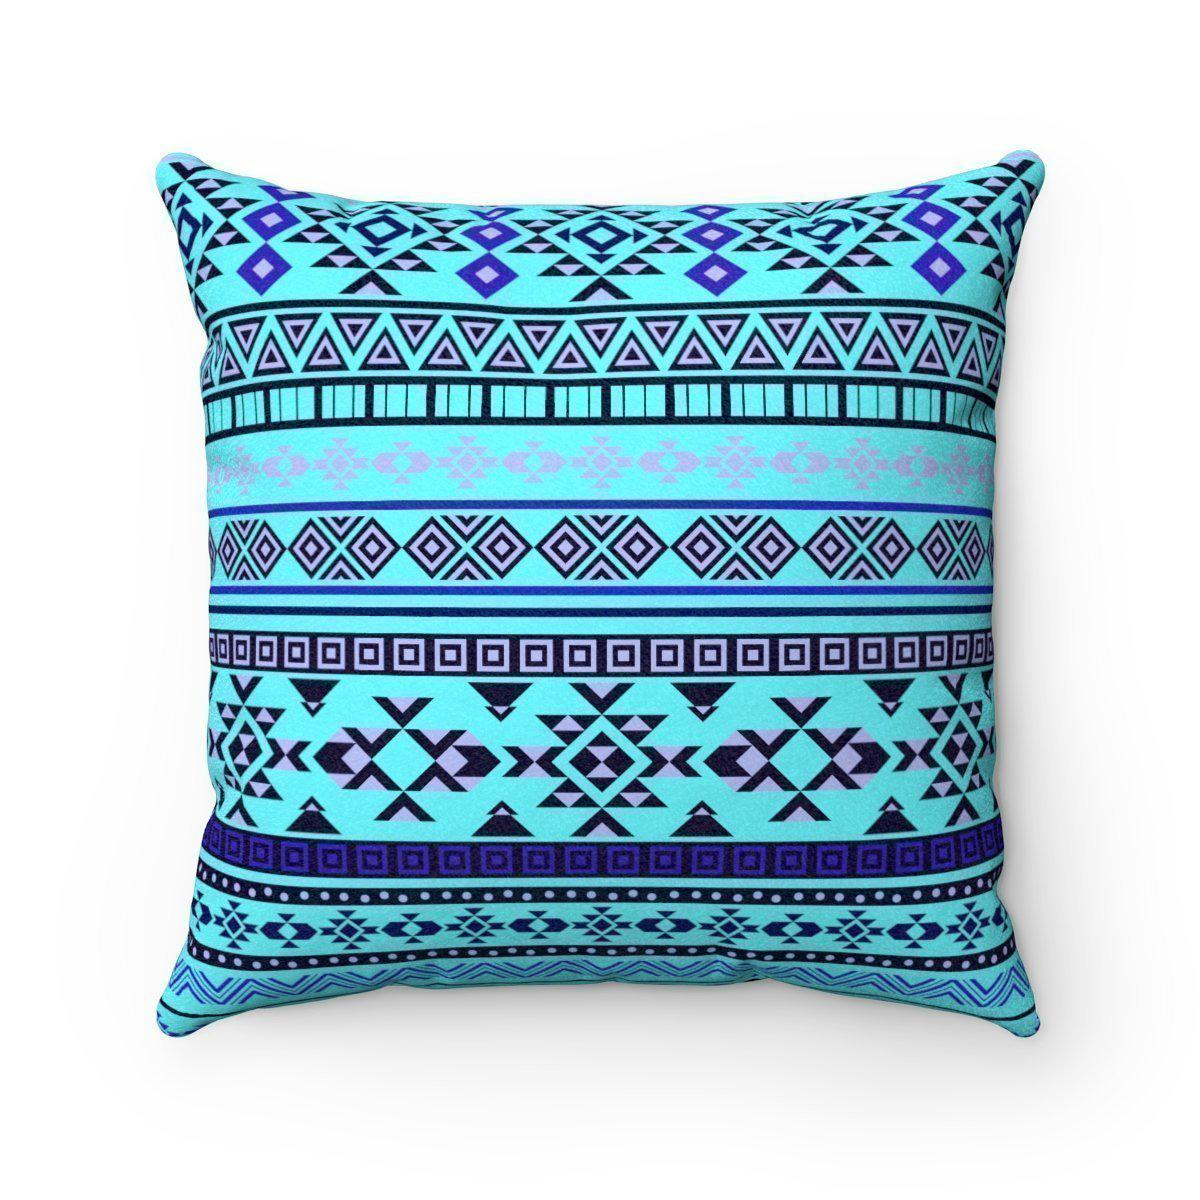 2 in 1 Double sided faux suede ethnic decorative pillow w/insert-Home Decor - Decorative Accents - Pillows & Throws - Decorative Pillows-Maison d'Elite-14x14-Très Elite